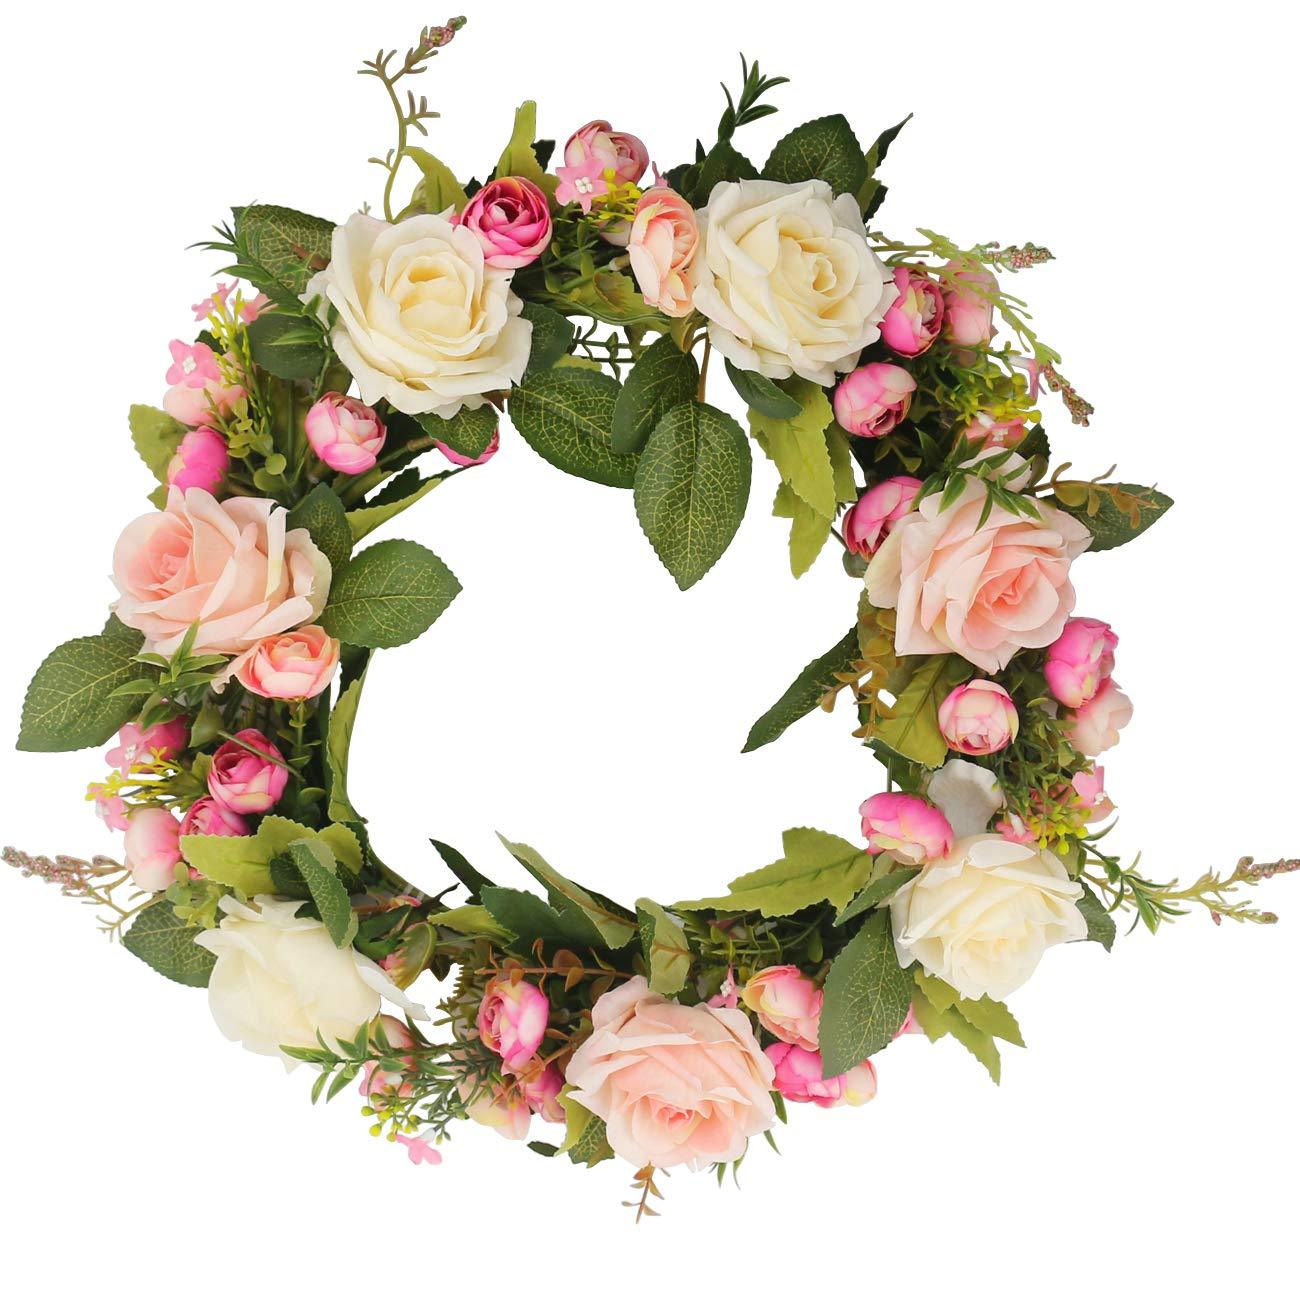 Christmas Wreaths Garlands Plants Christmas Artificial Flower Wreath Floral Simulation Garland Lintel Door Home Furniture Diy Tohoku Morinagamilk Co Jp